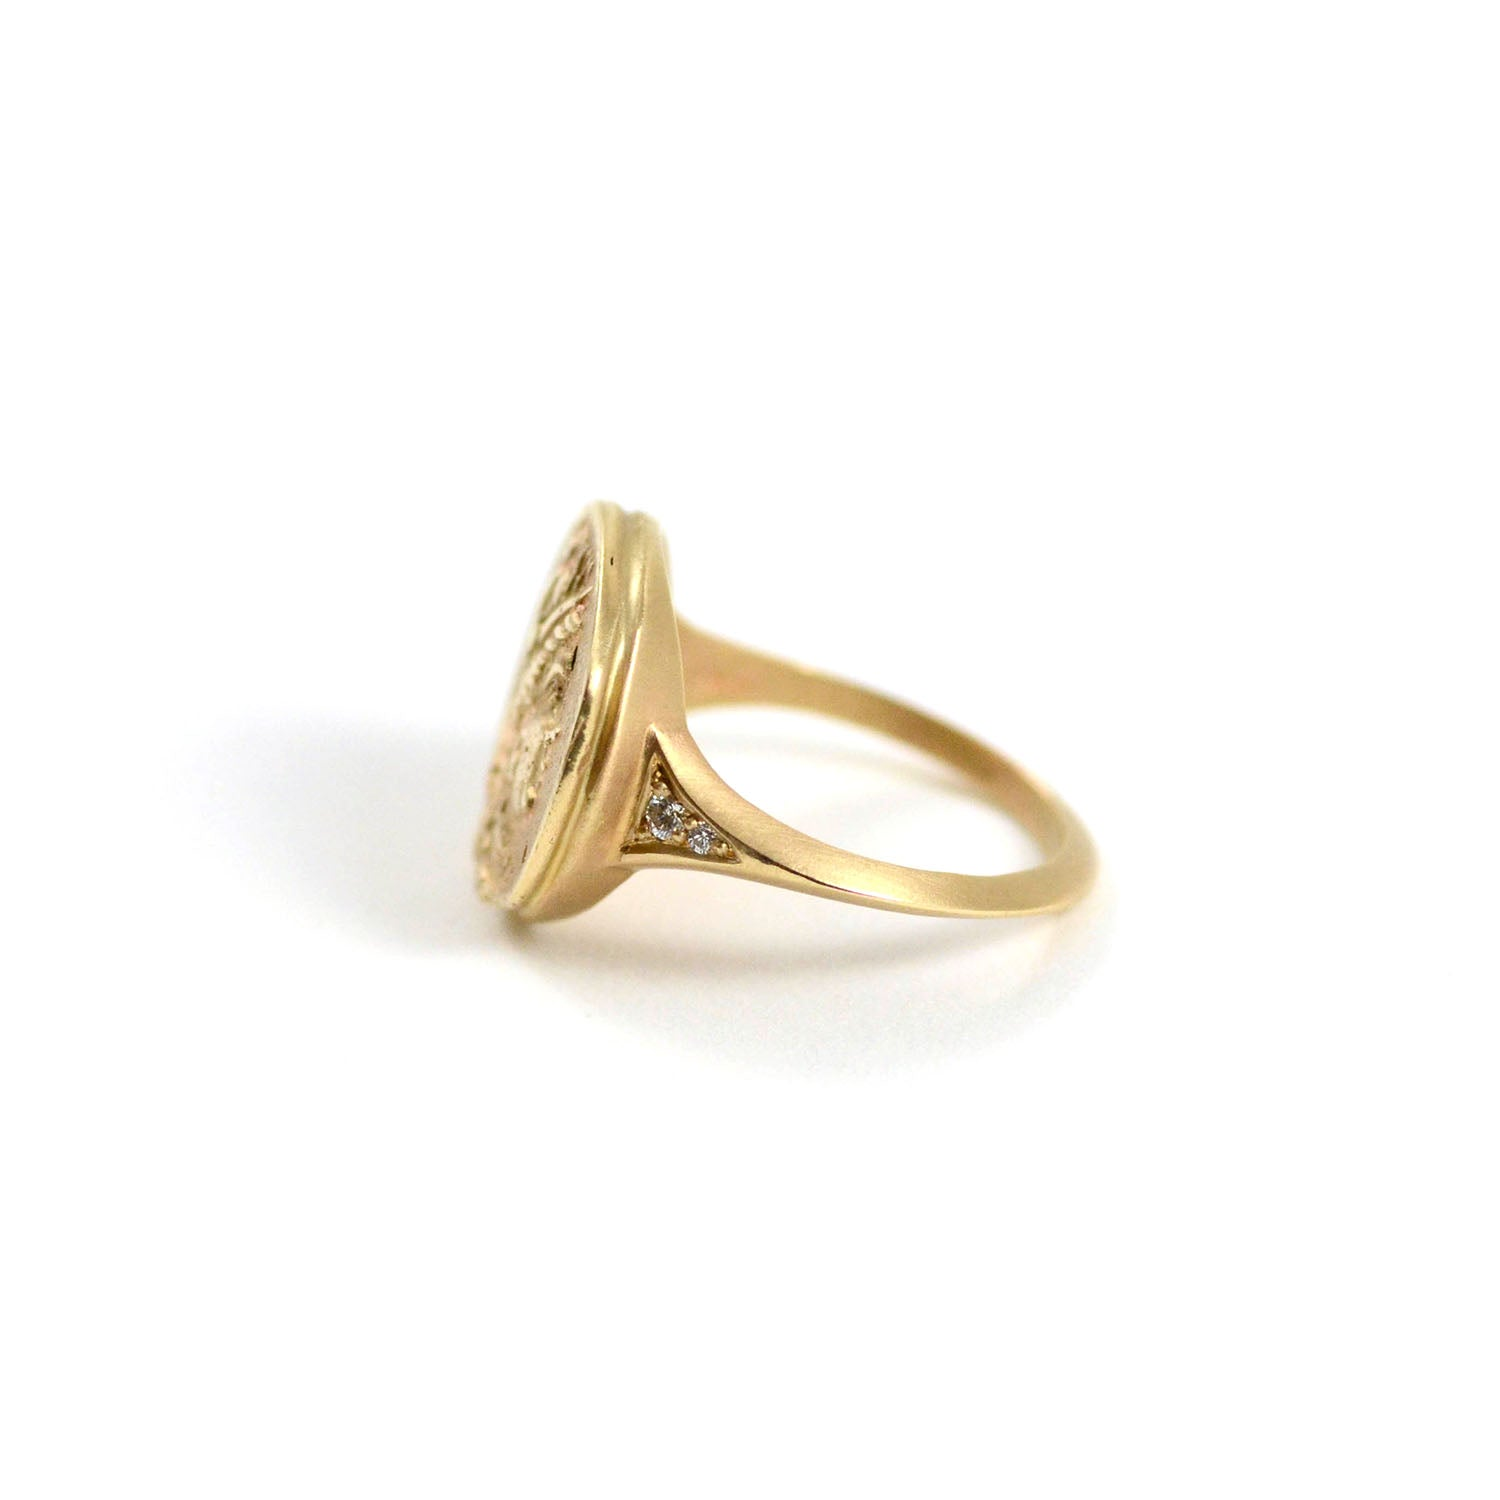 'Goddess of Self Value' Artifact Ring